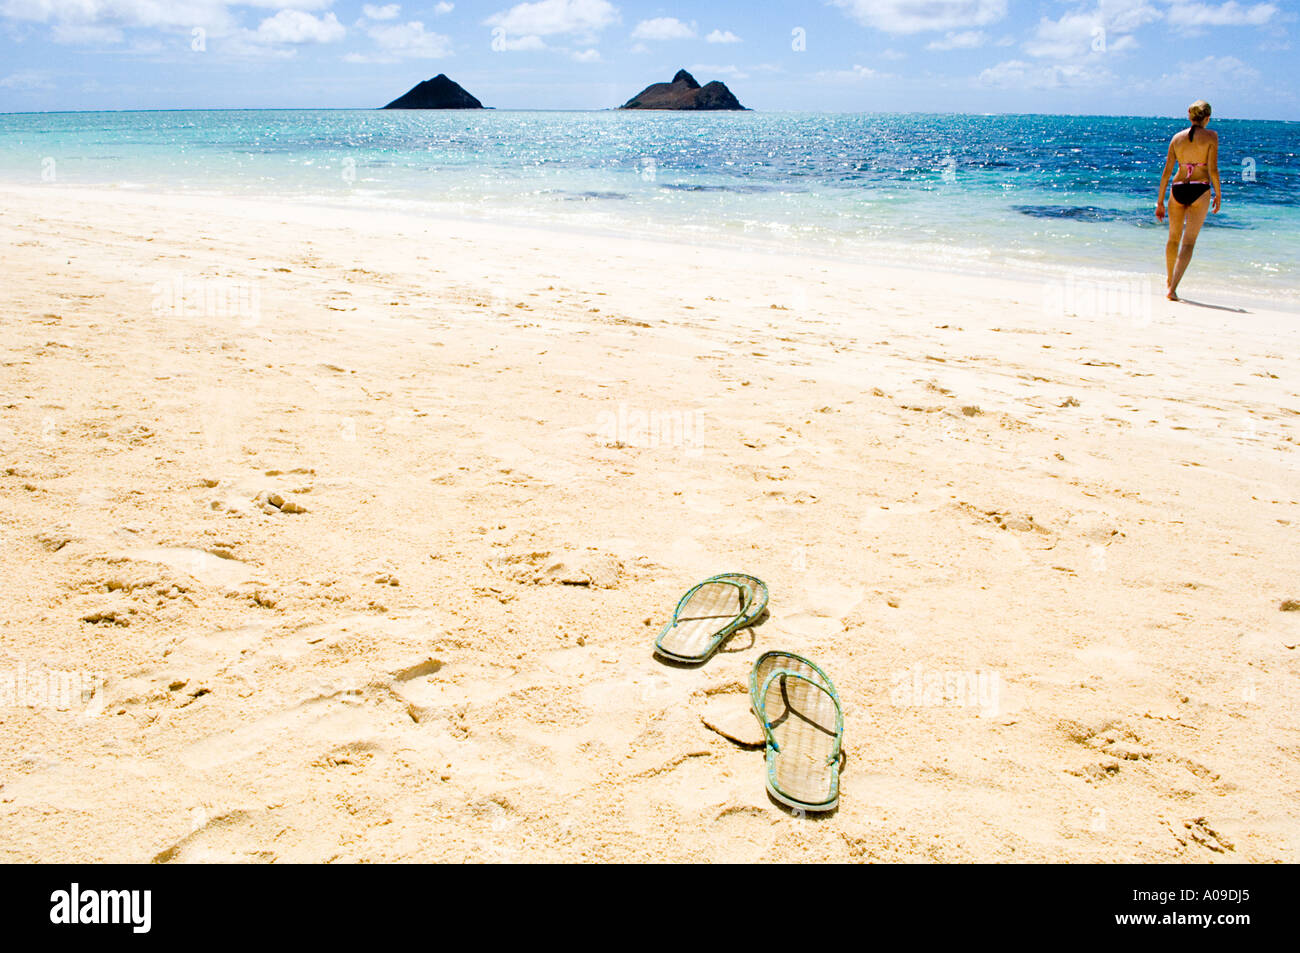 sunbather leaves her flip flop and runs into the surf - Stock Image